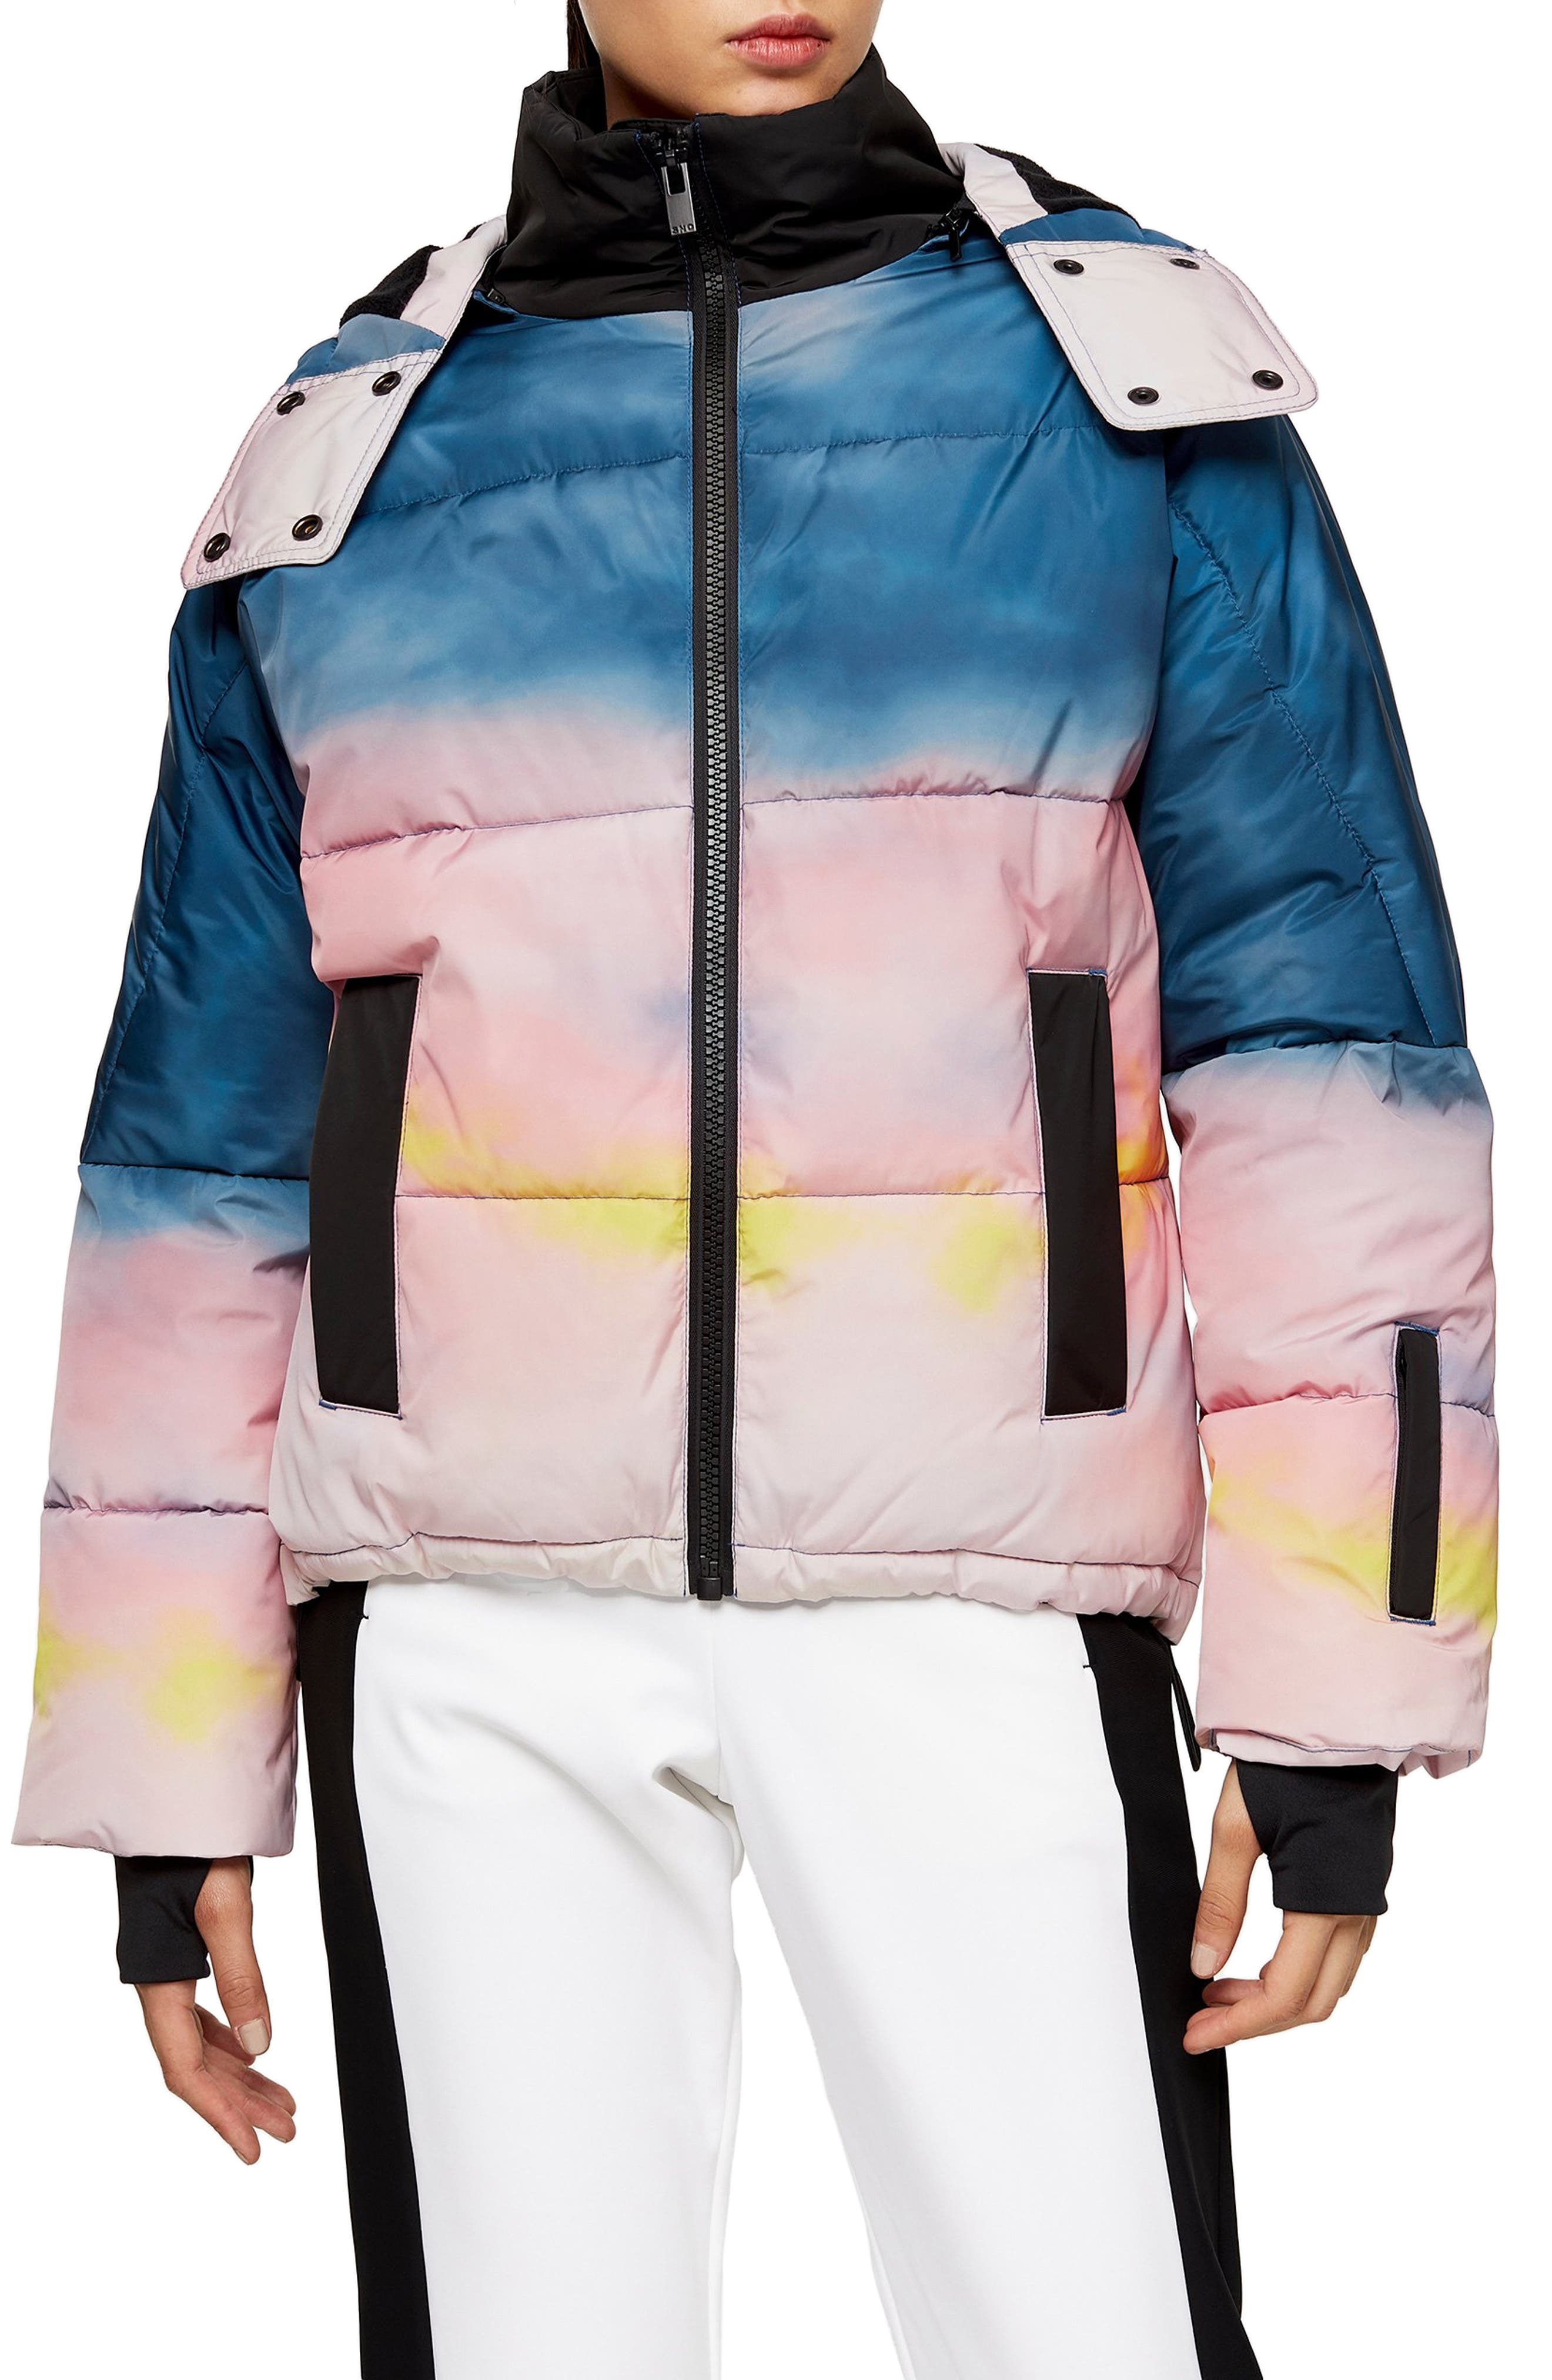 Topshop Ski Suit Snow All In One Inner Size UK 6 8 10 12 14